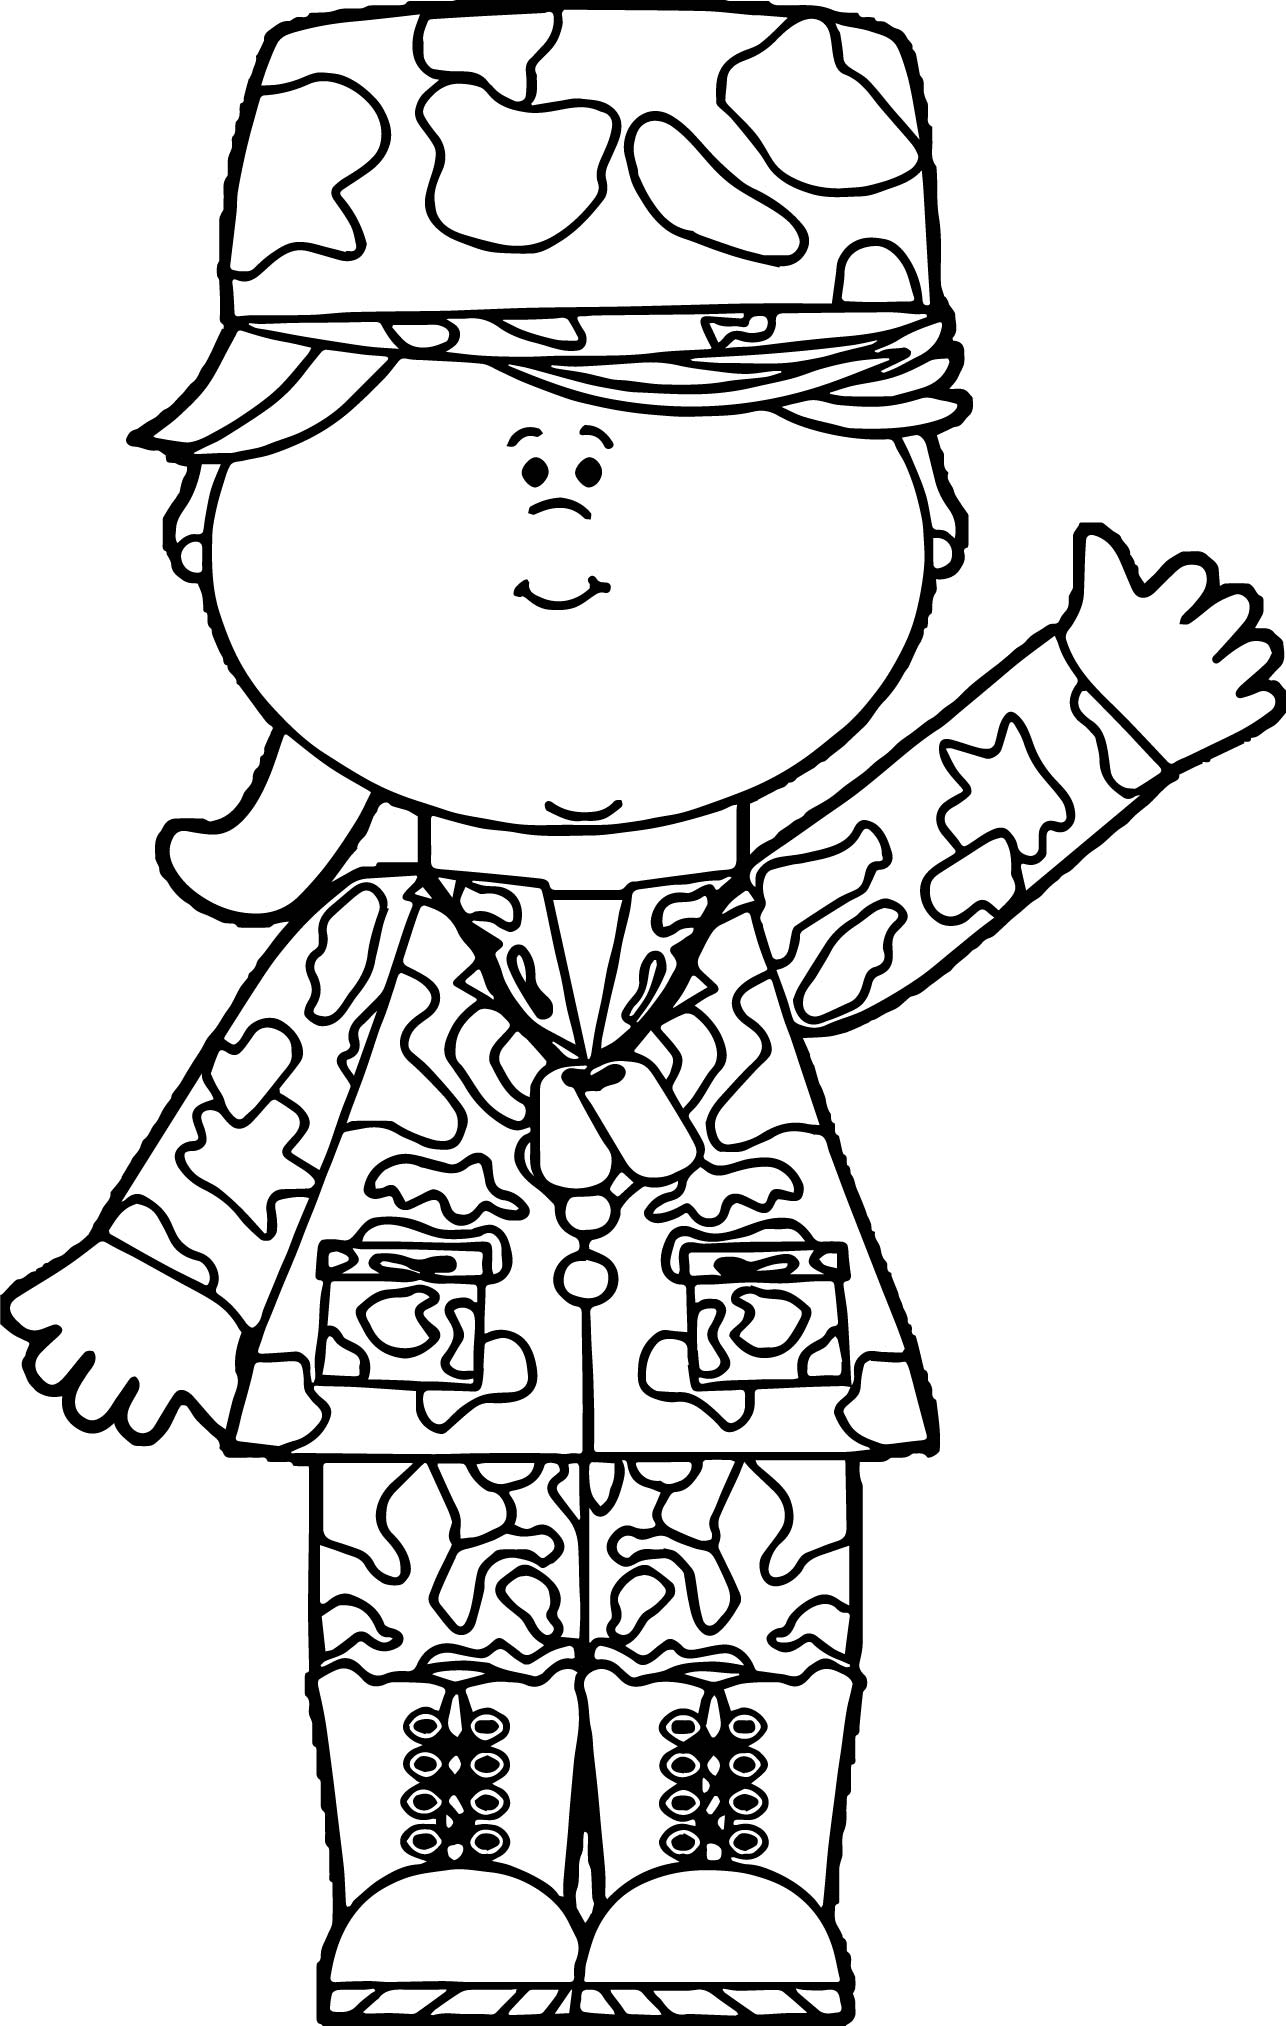 soldier girl waving coloring page - Soldier Coloring Pages